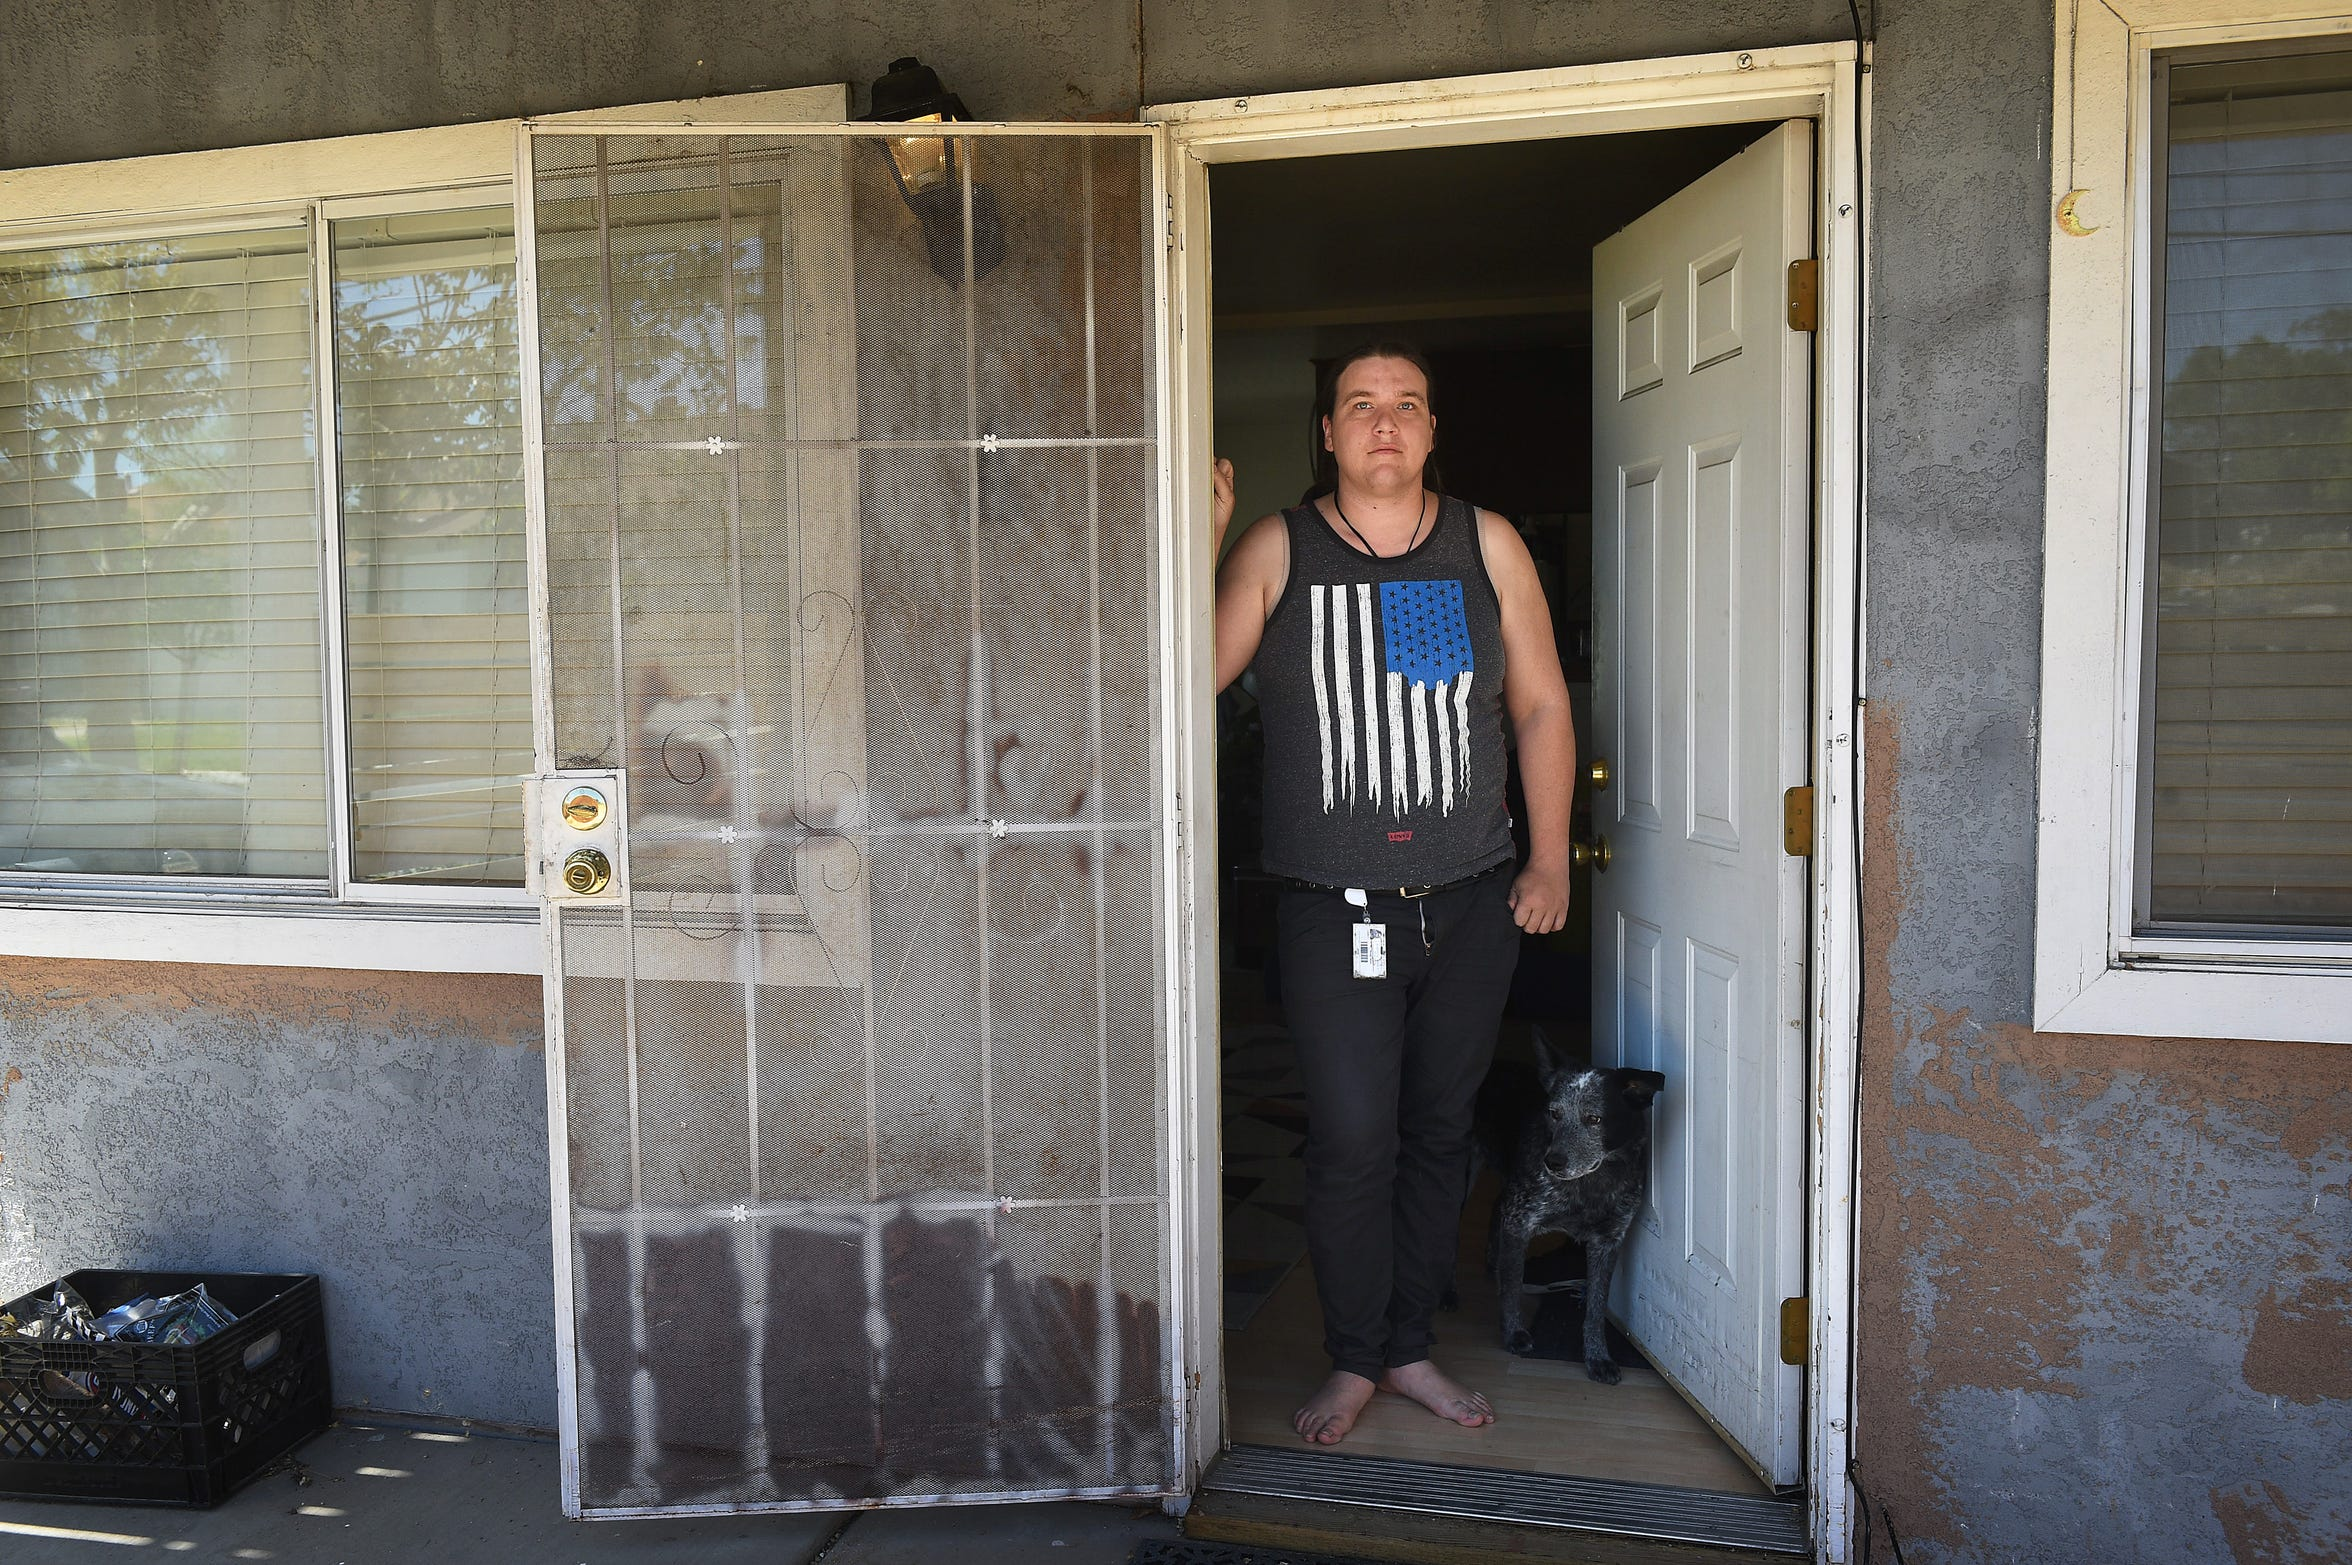 Renter Brooke Noble poses for a portrait at 715 Wheeler Ave. in Reno on May 10, 2019.